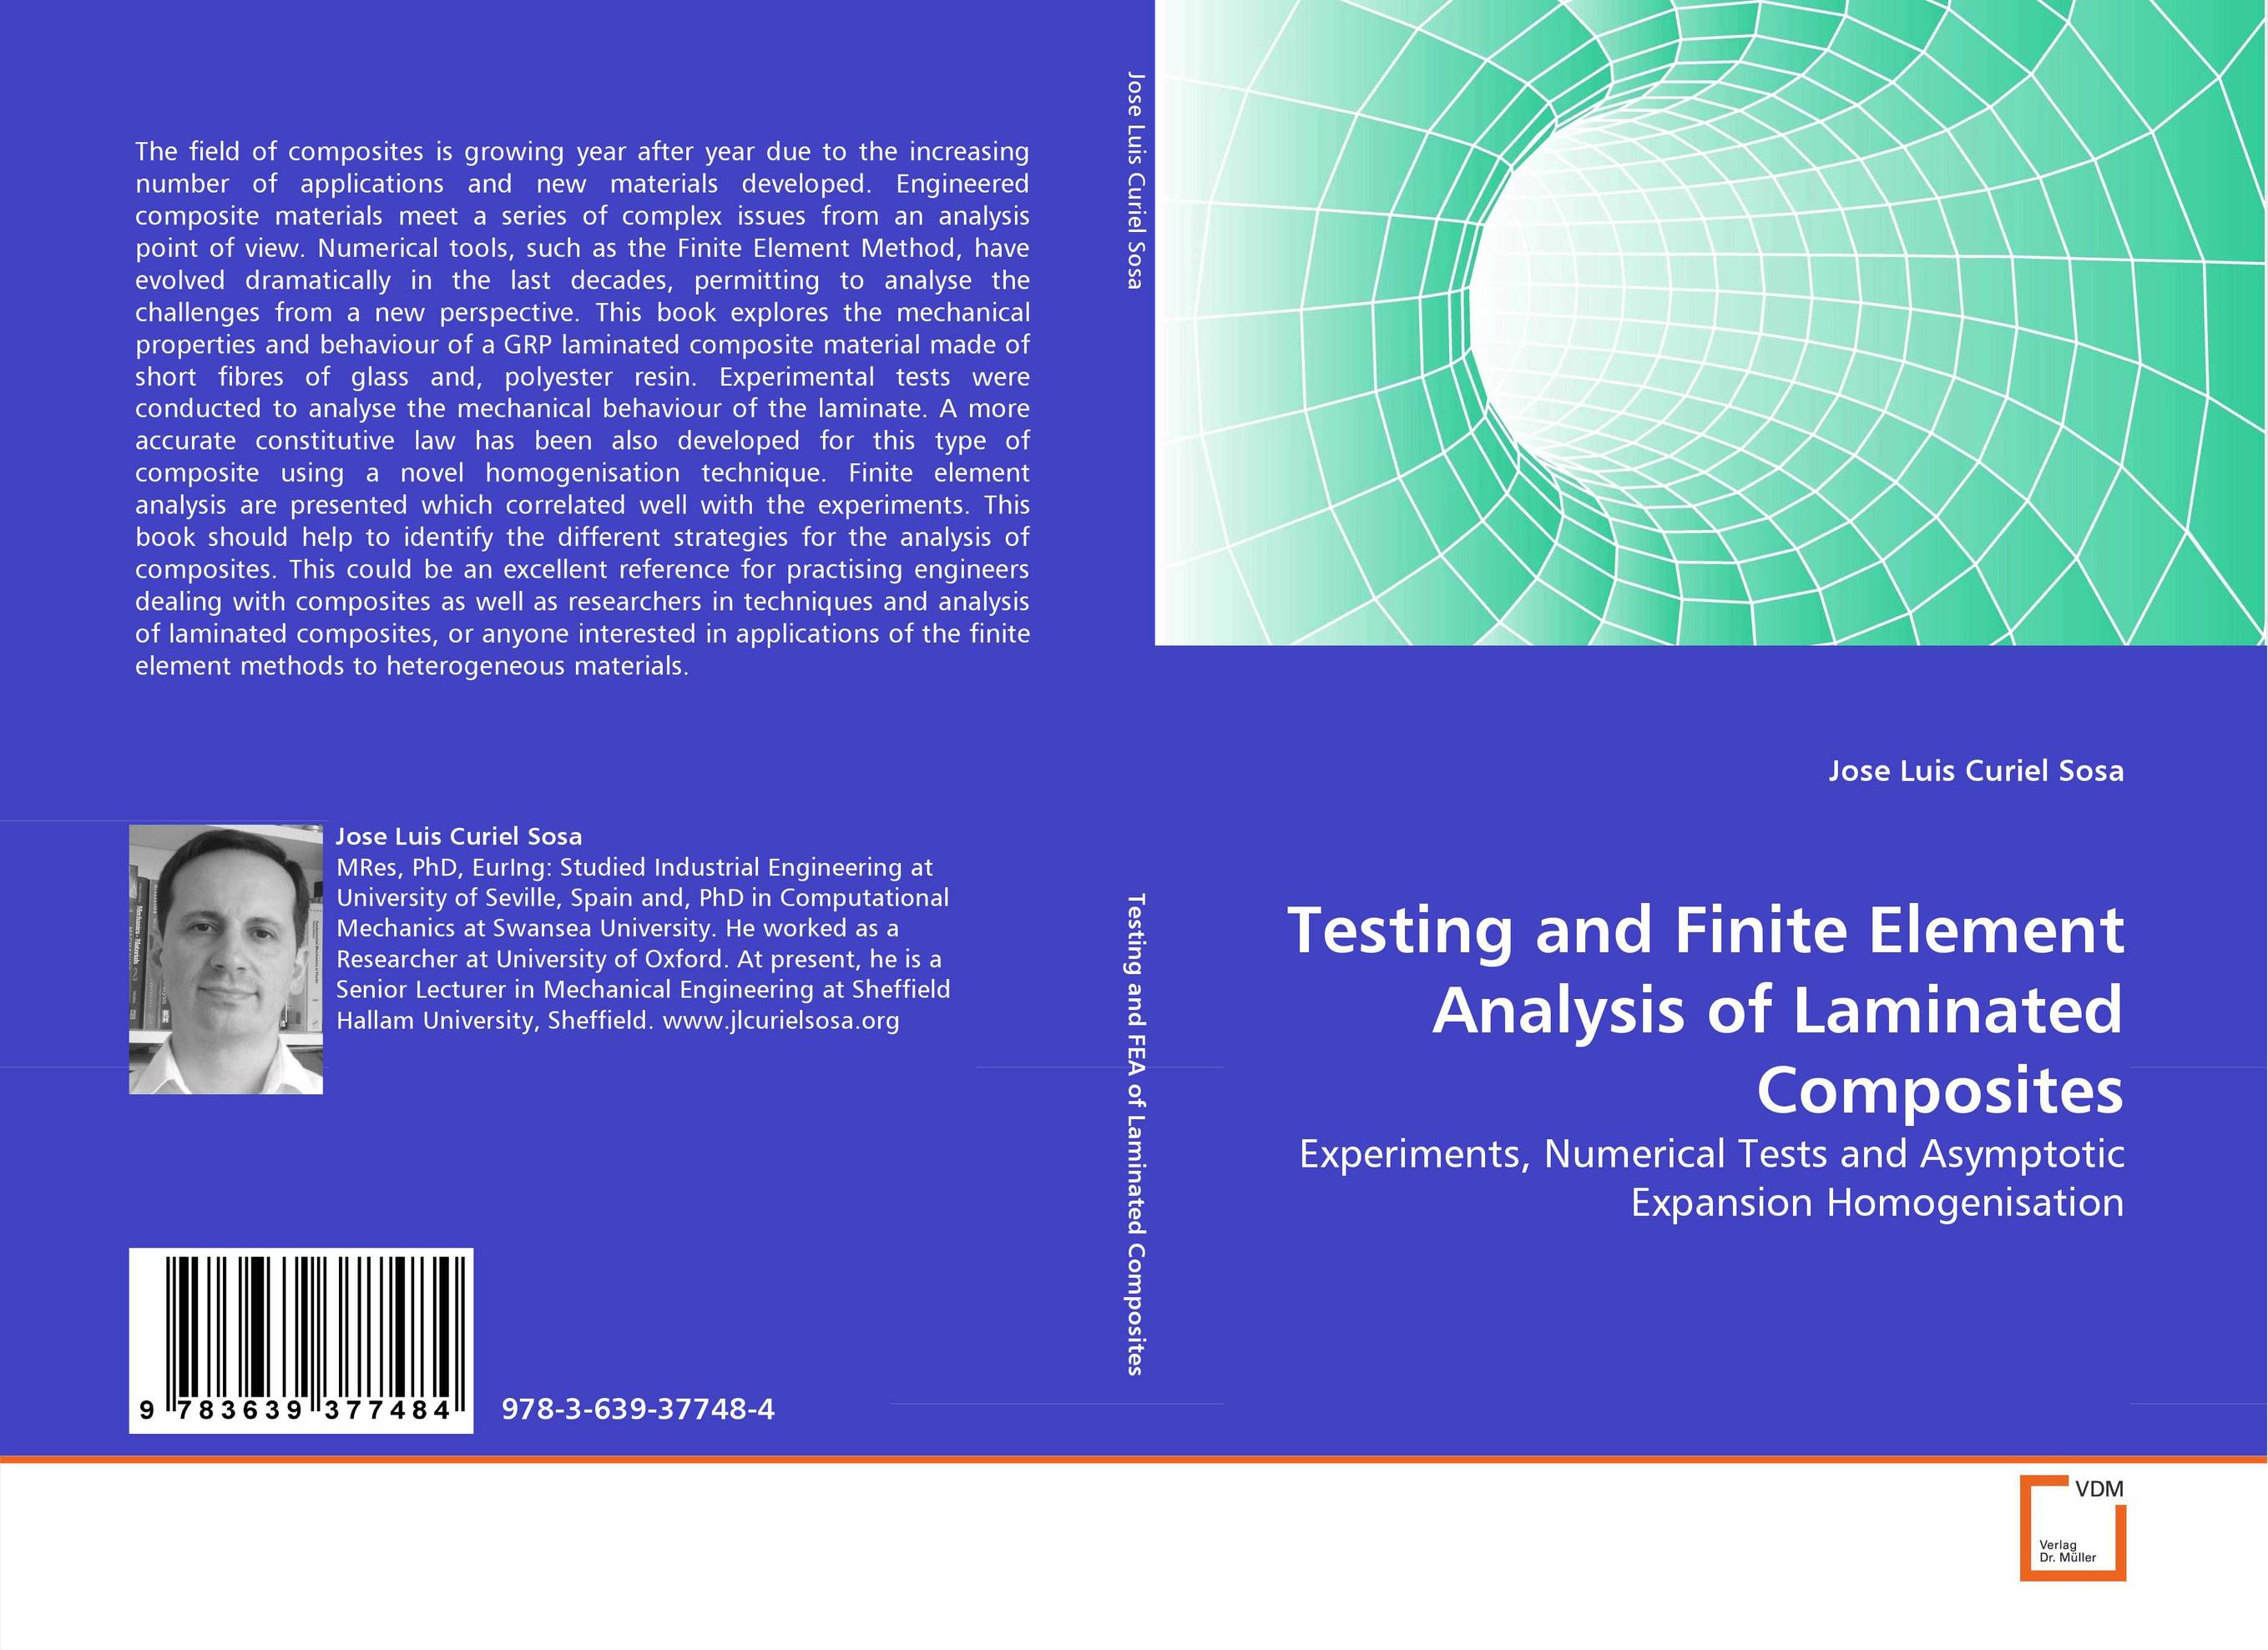 Testing and Finite Element Analysis of Laminated Composites